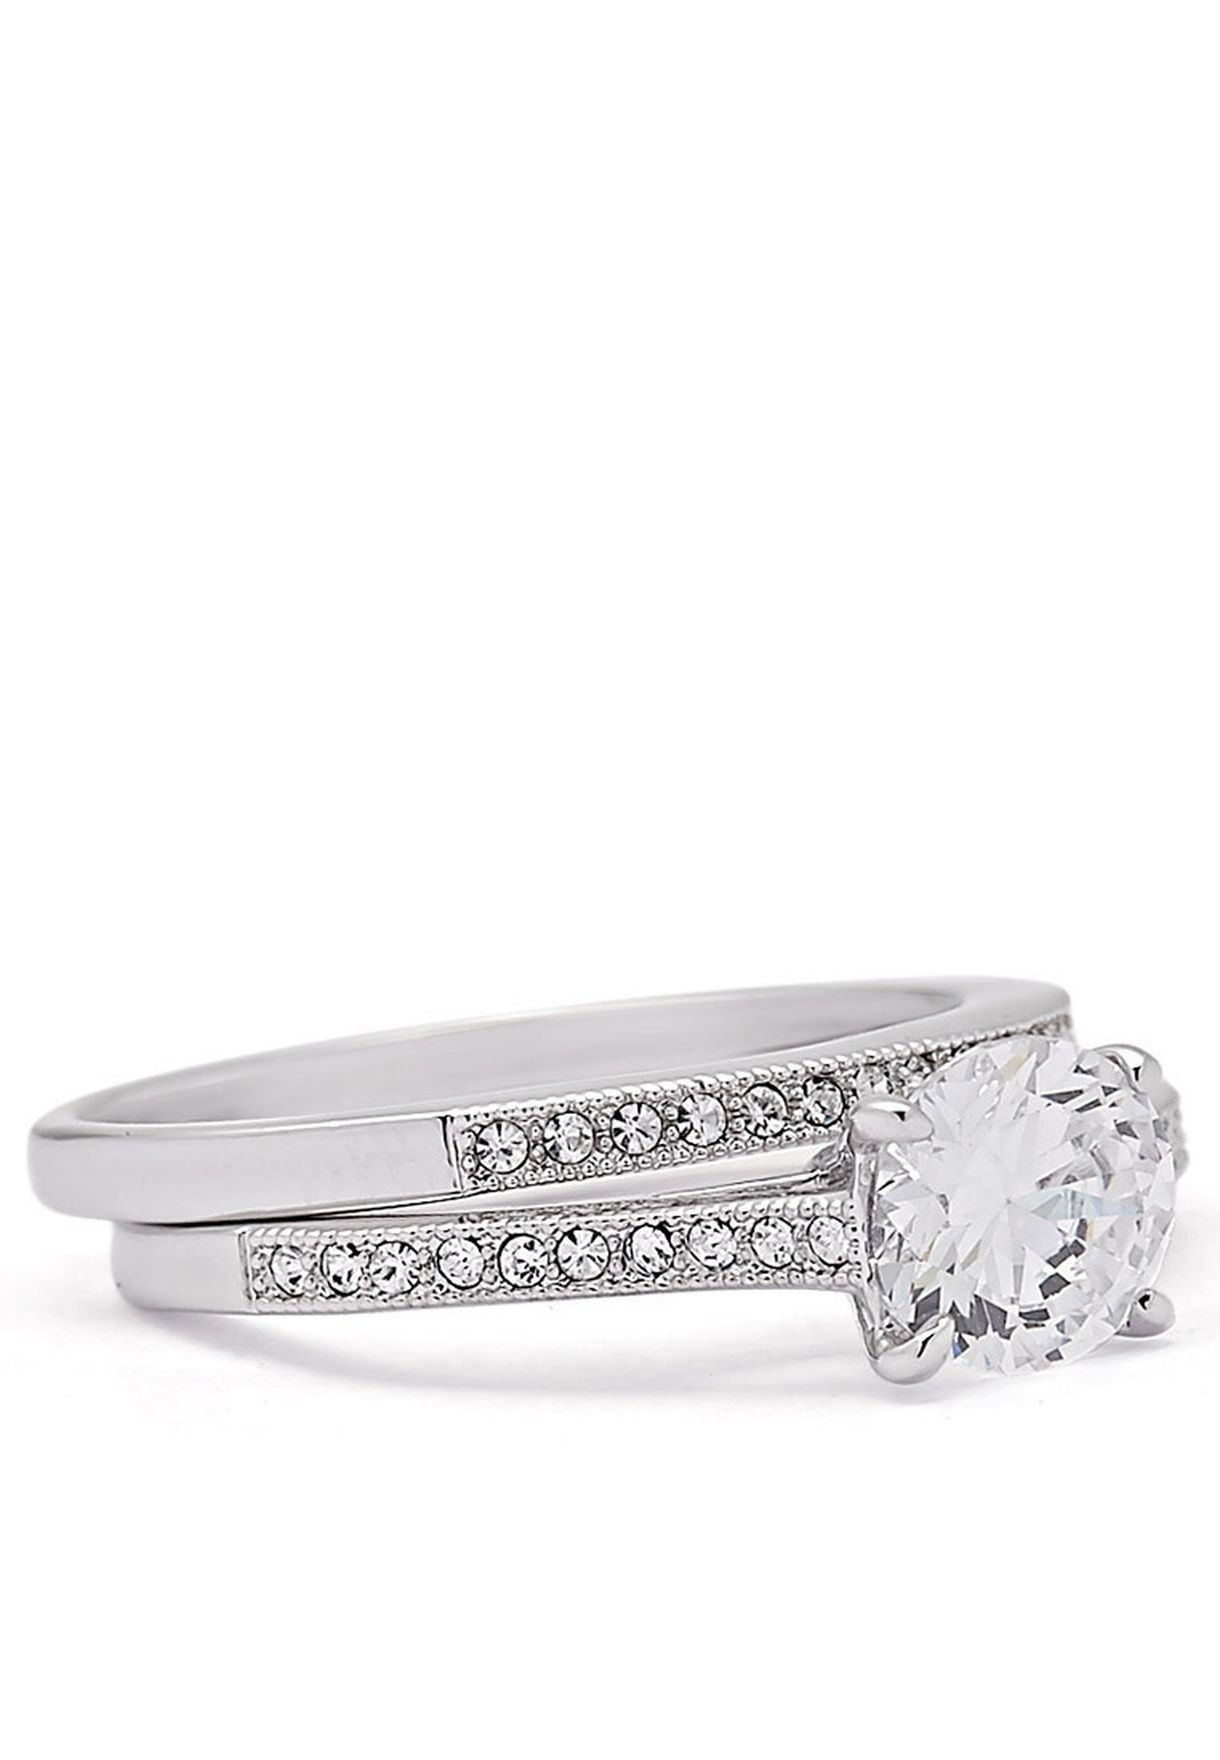 Shop Buckley London Silver Pave Wedding Duo Ring For Women In Qatar